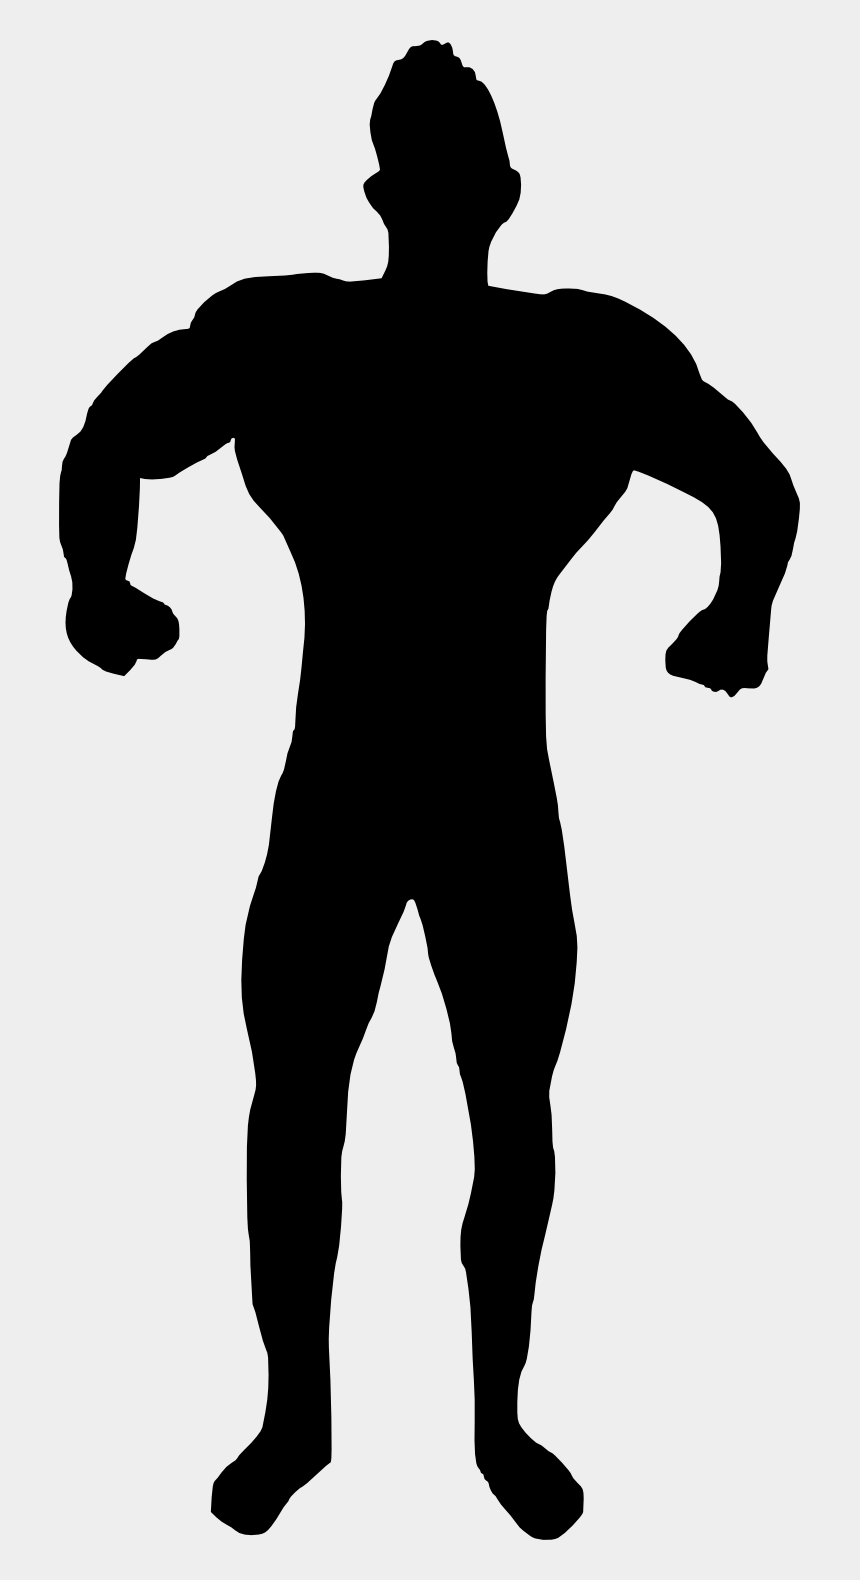 muscle clipart, Cartoons - Bodybuilder Silhouette Png - Silhouette Of Bodybuilder Png